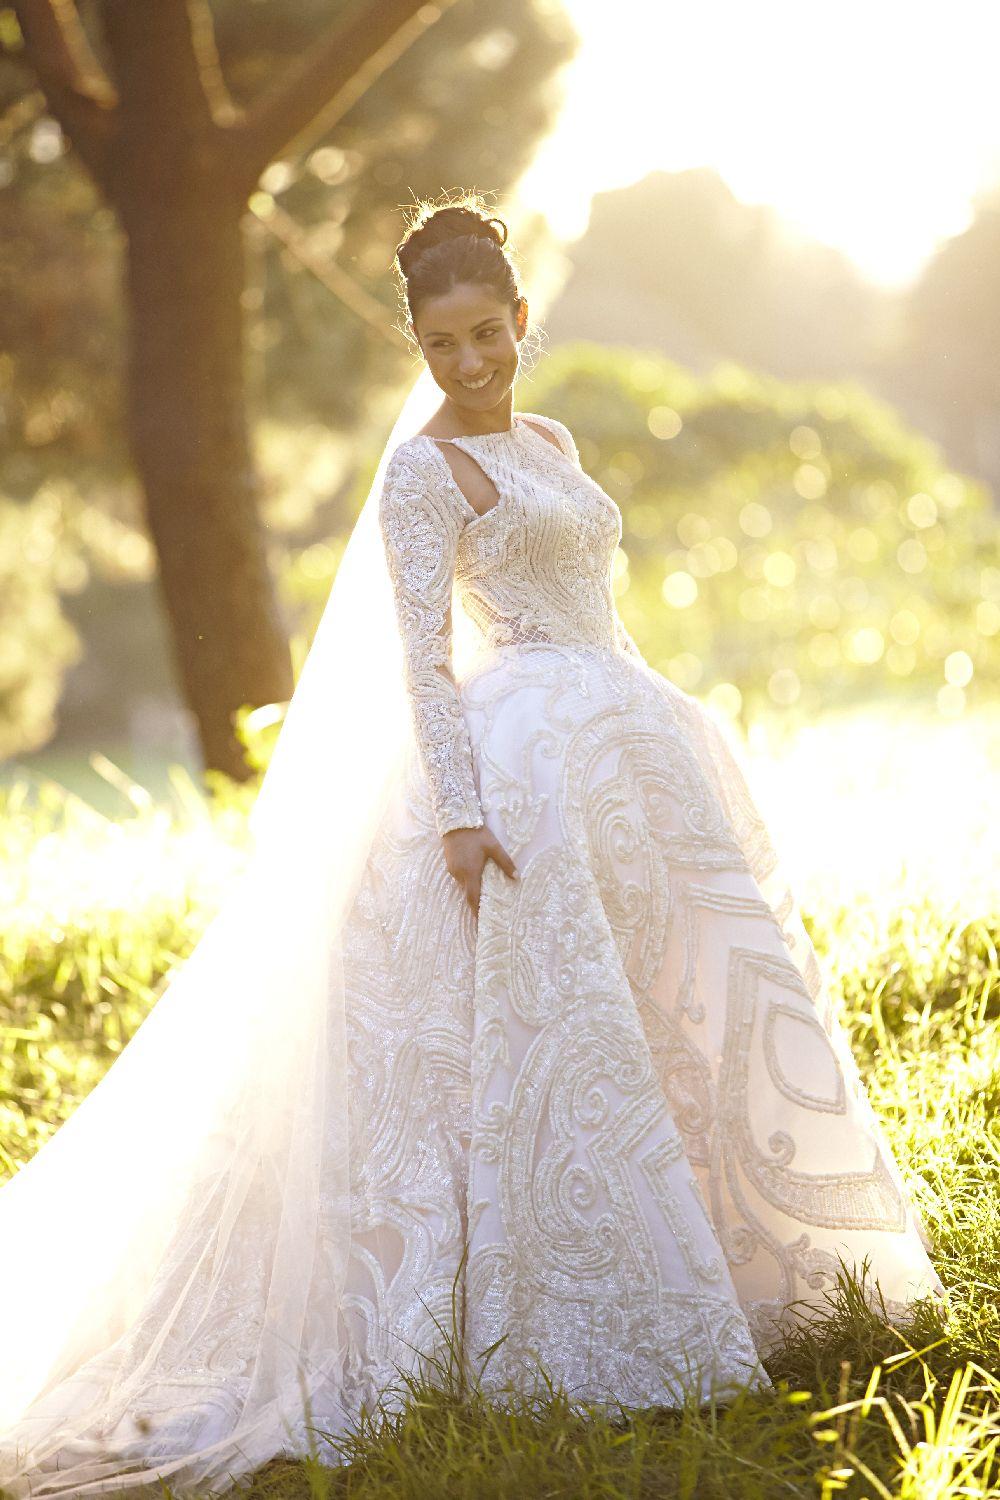 Timeless wedding dresses  JuAton wedding dress for an elegantclassic and timeless wedding in